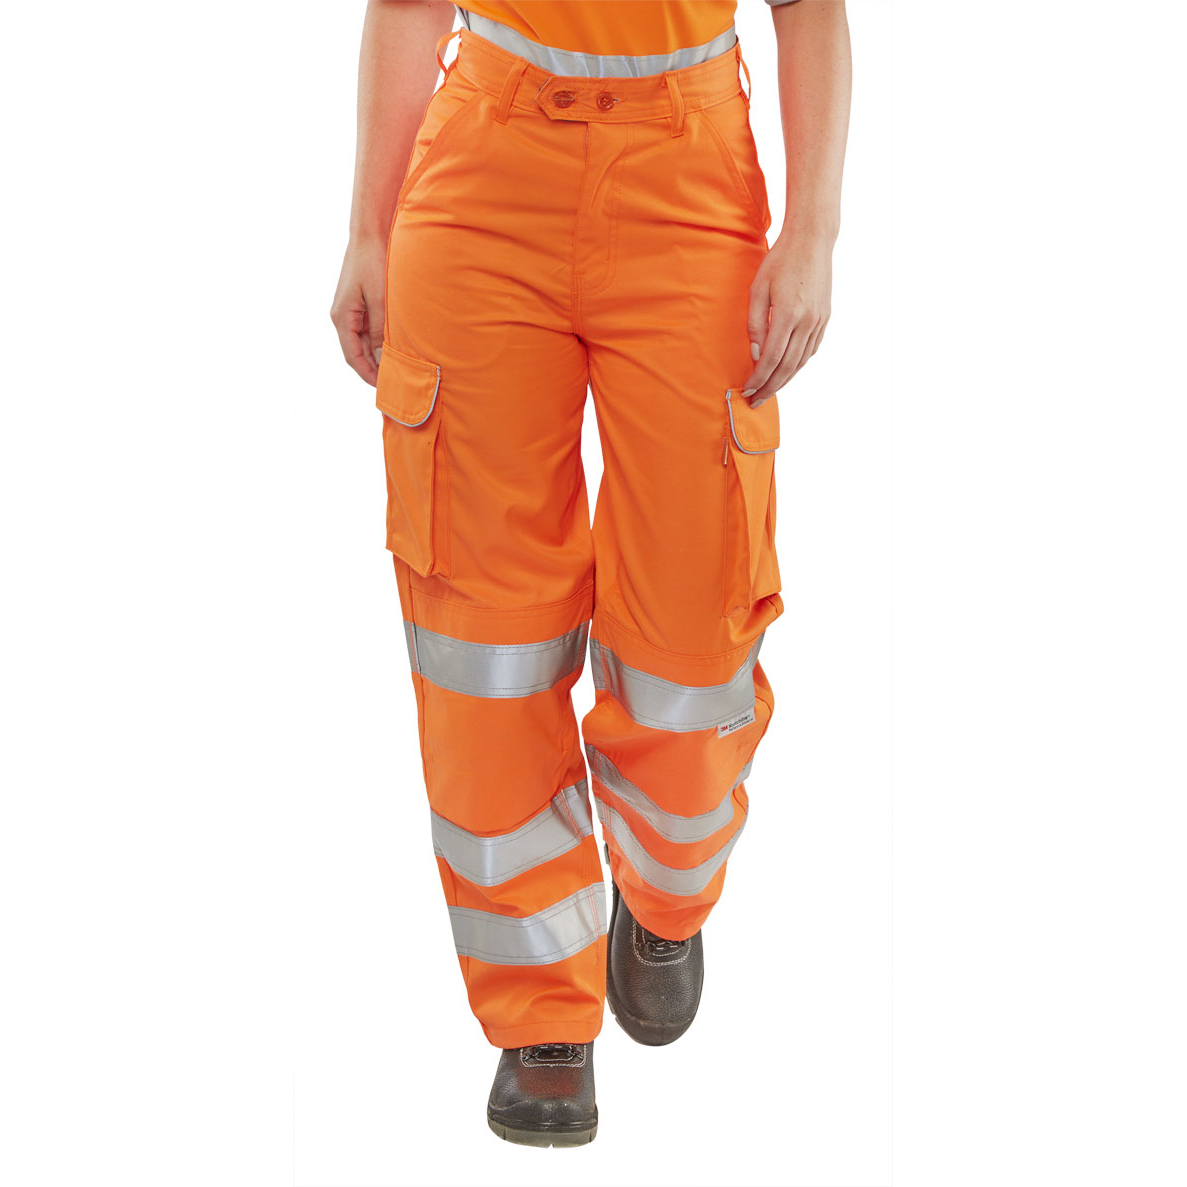 BSeen Rail Spec Trousers Ladies Teflon Hi-Vis Reflective Orange 34 Ref LRST34 *Up to 3 Day Leadtime*